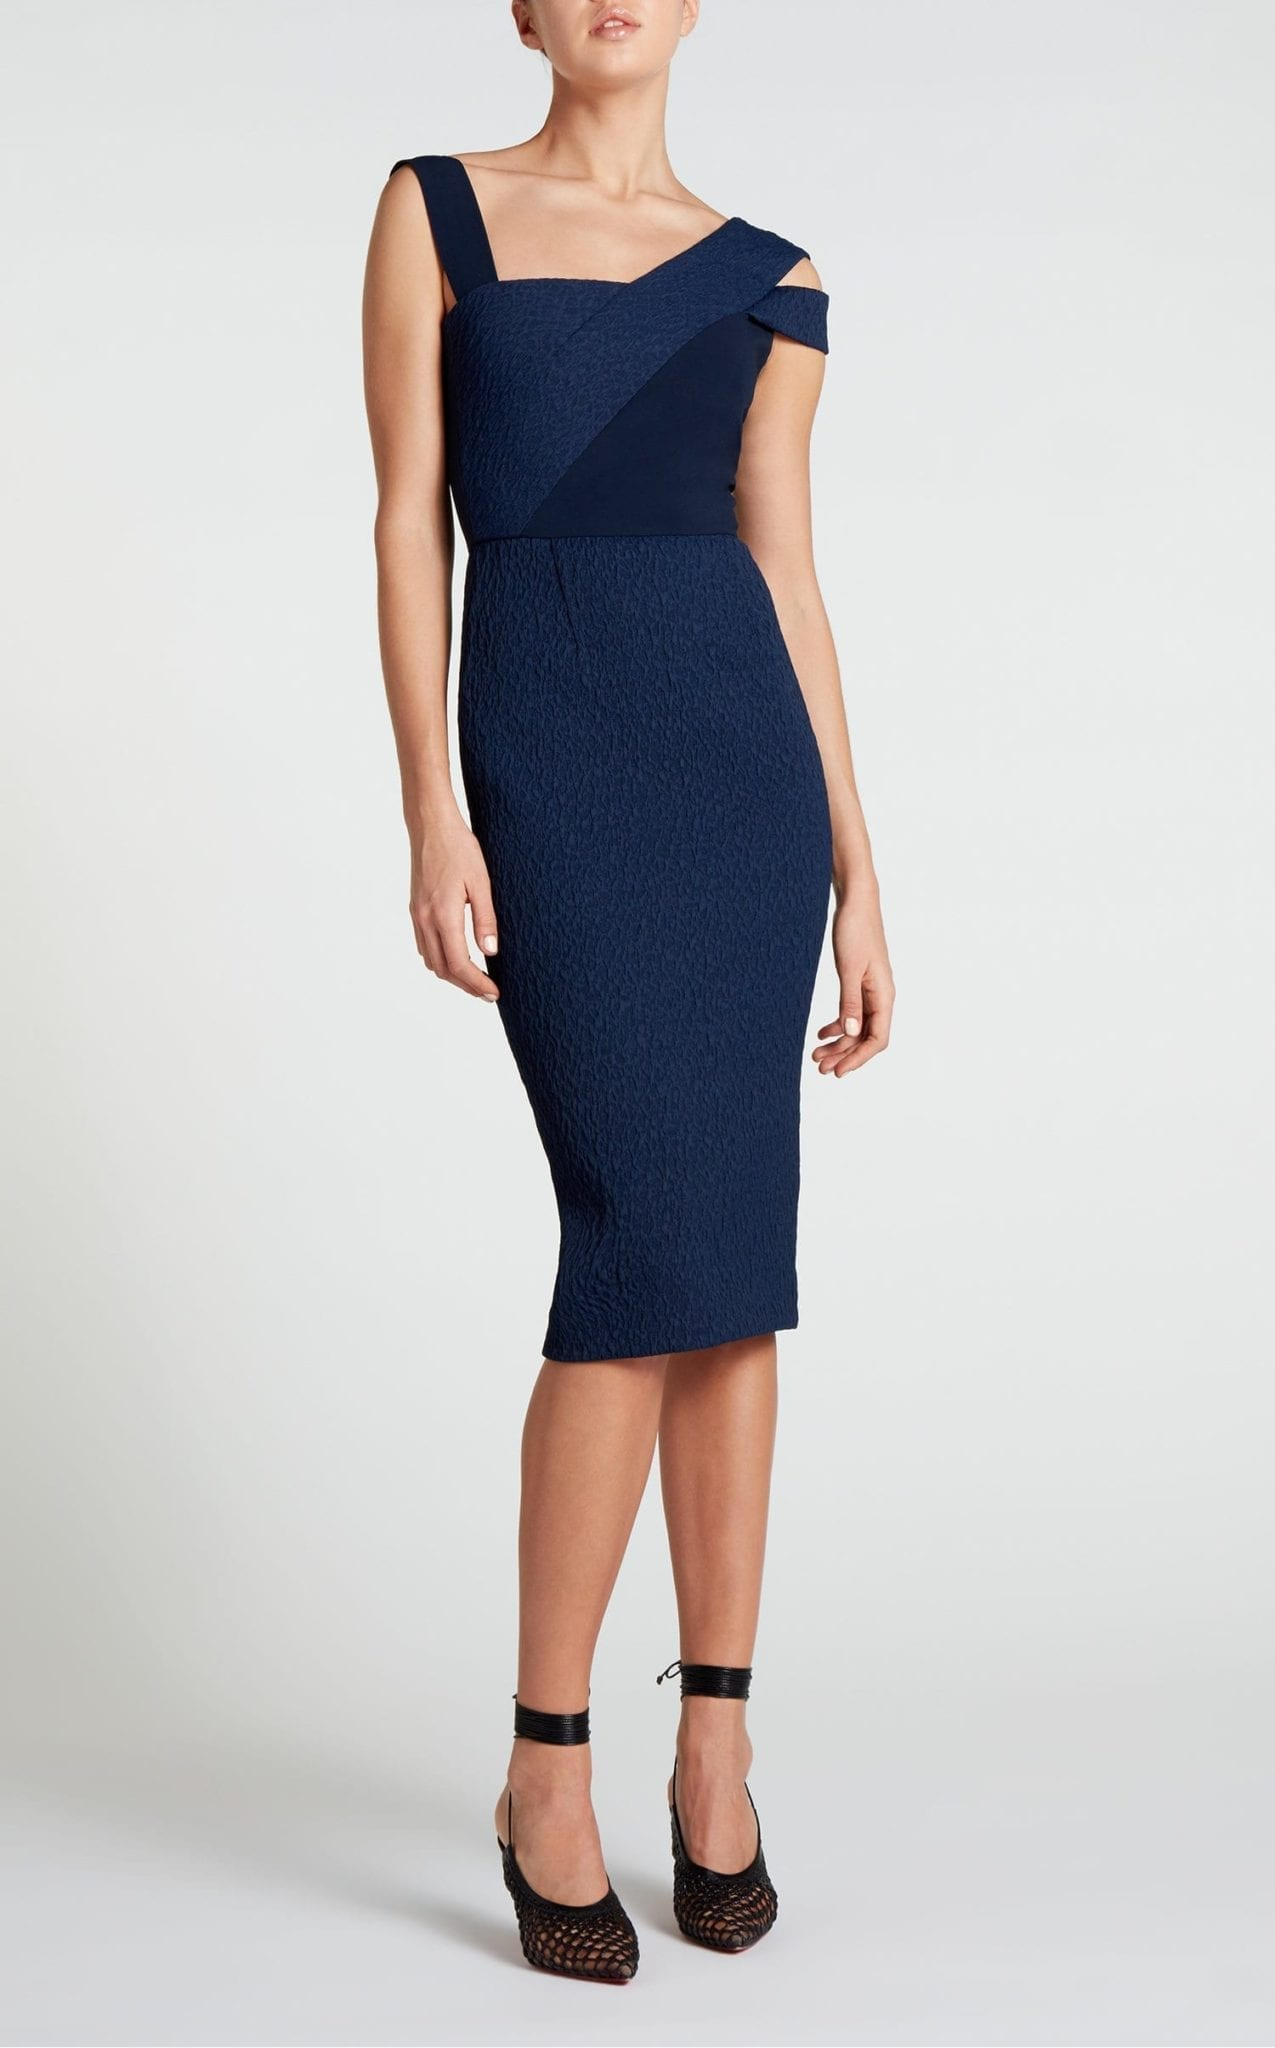 ROLAND MOURET Elsom Navy Dress